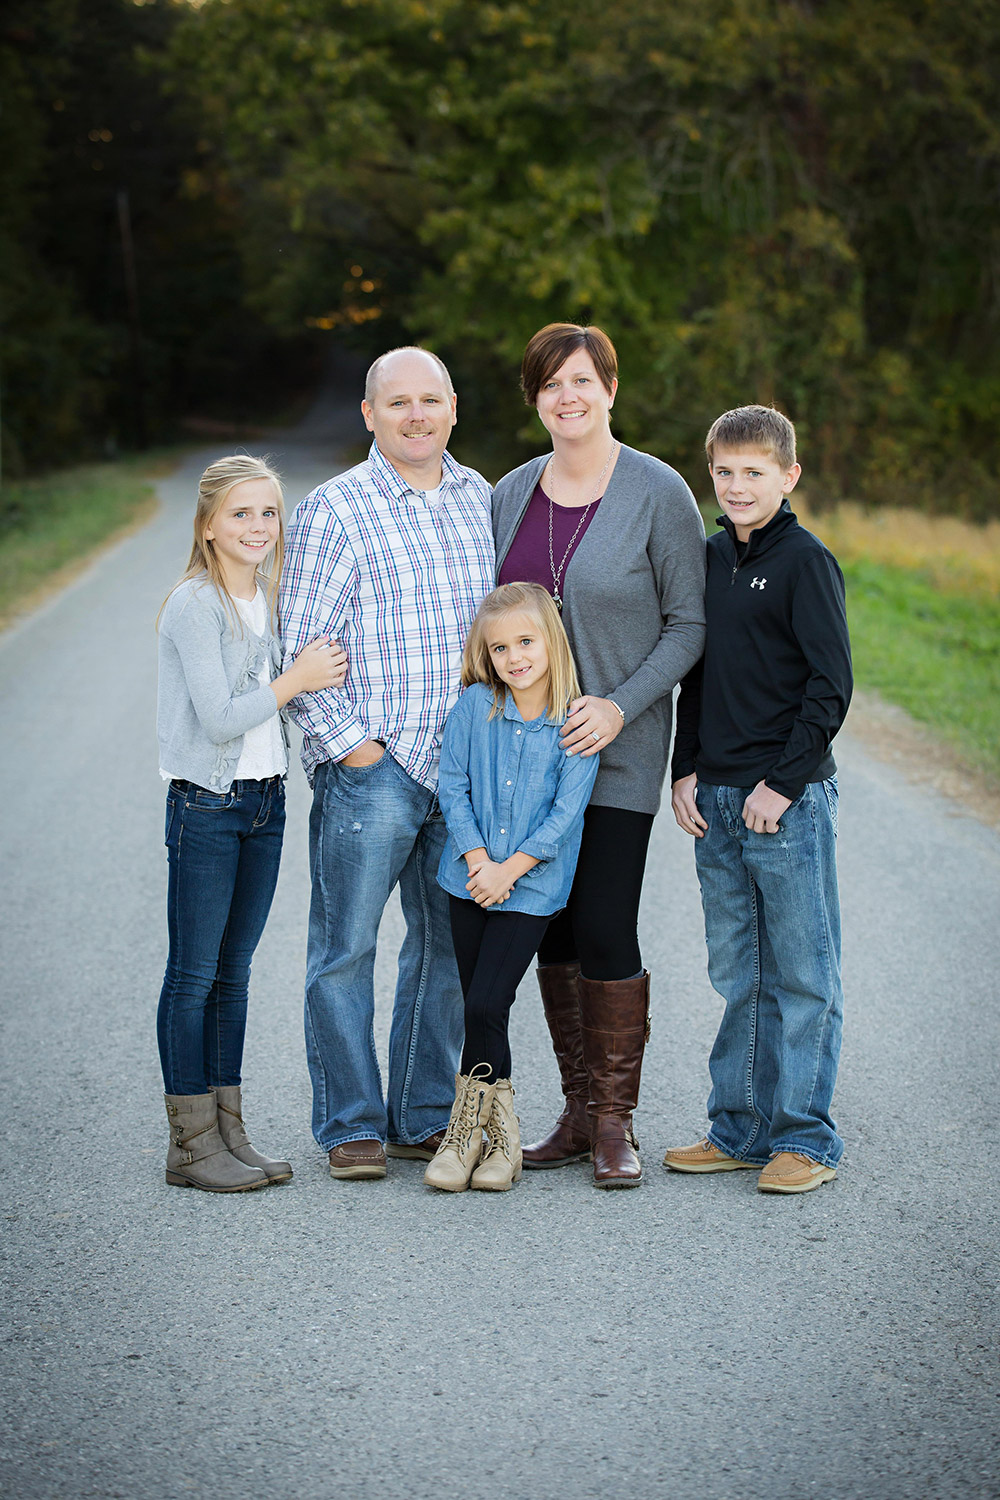 family-portaits-hillary-frost-photography-9860.jpg